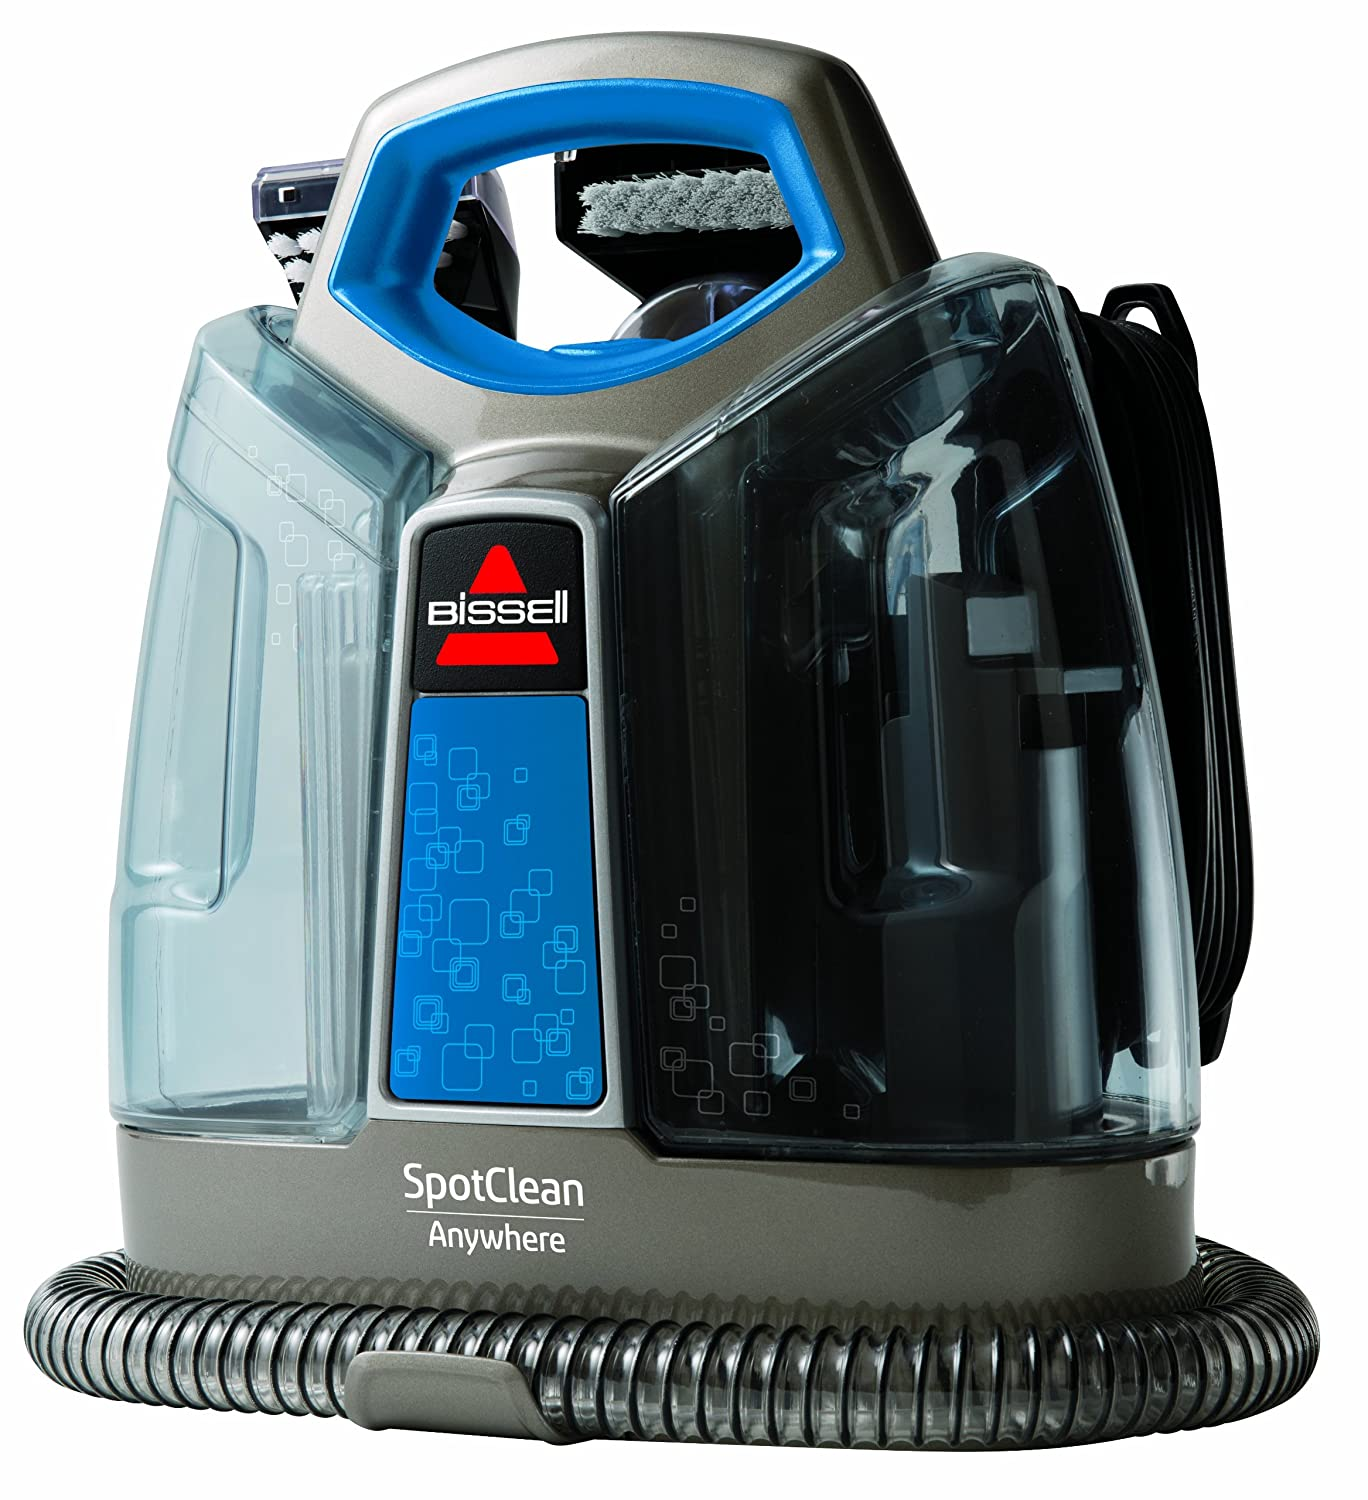 Amazon.com: BISSELL SpotClean Anywhere Portable Carpet Cleaner, 97491: Home  U0026 Kitchen